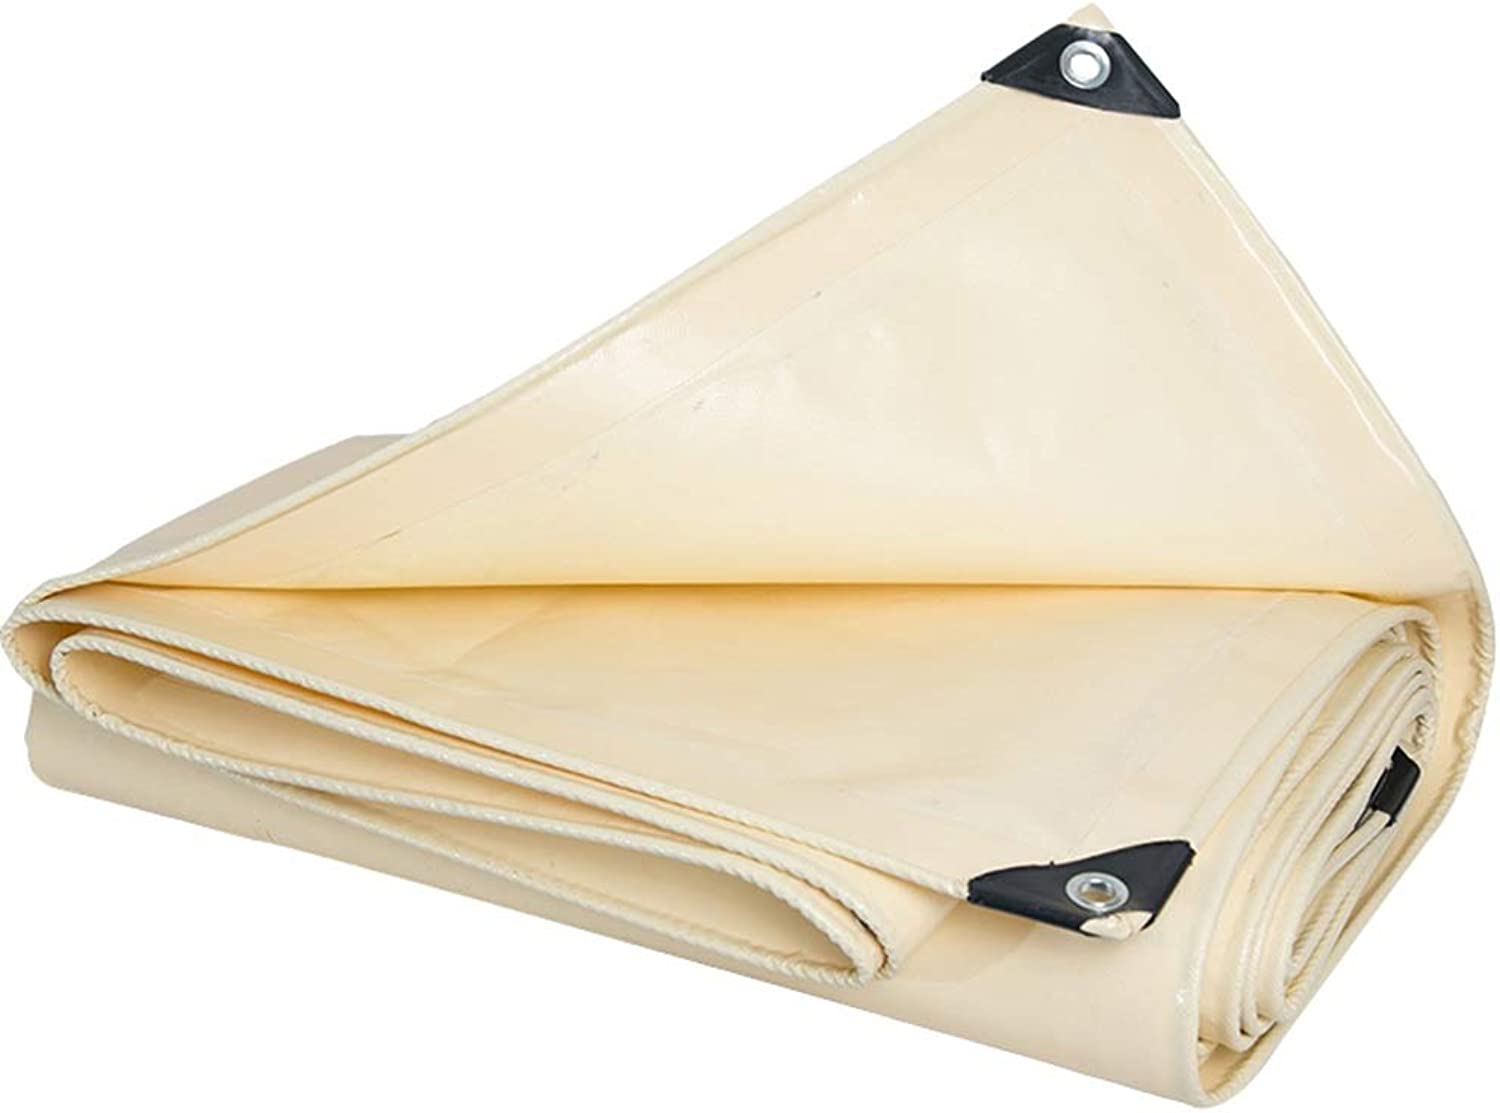 Tarps PVC Outdoor Heavy Duty Tarpaulin Waterproof Sunscreen Knife Scraping Cloth Stage Canvas Thicken Rainproof Shed Cloth, High-Density Woven Beige Cloth Waterproof Tarpaulin (Size   3m×5m)